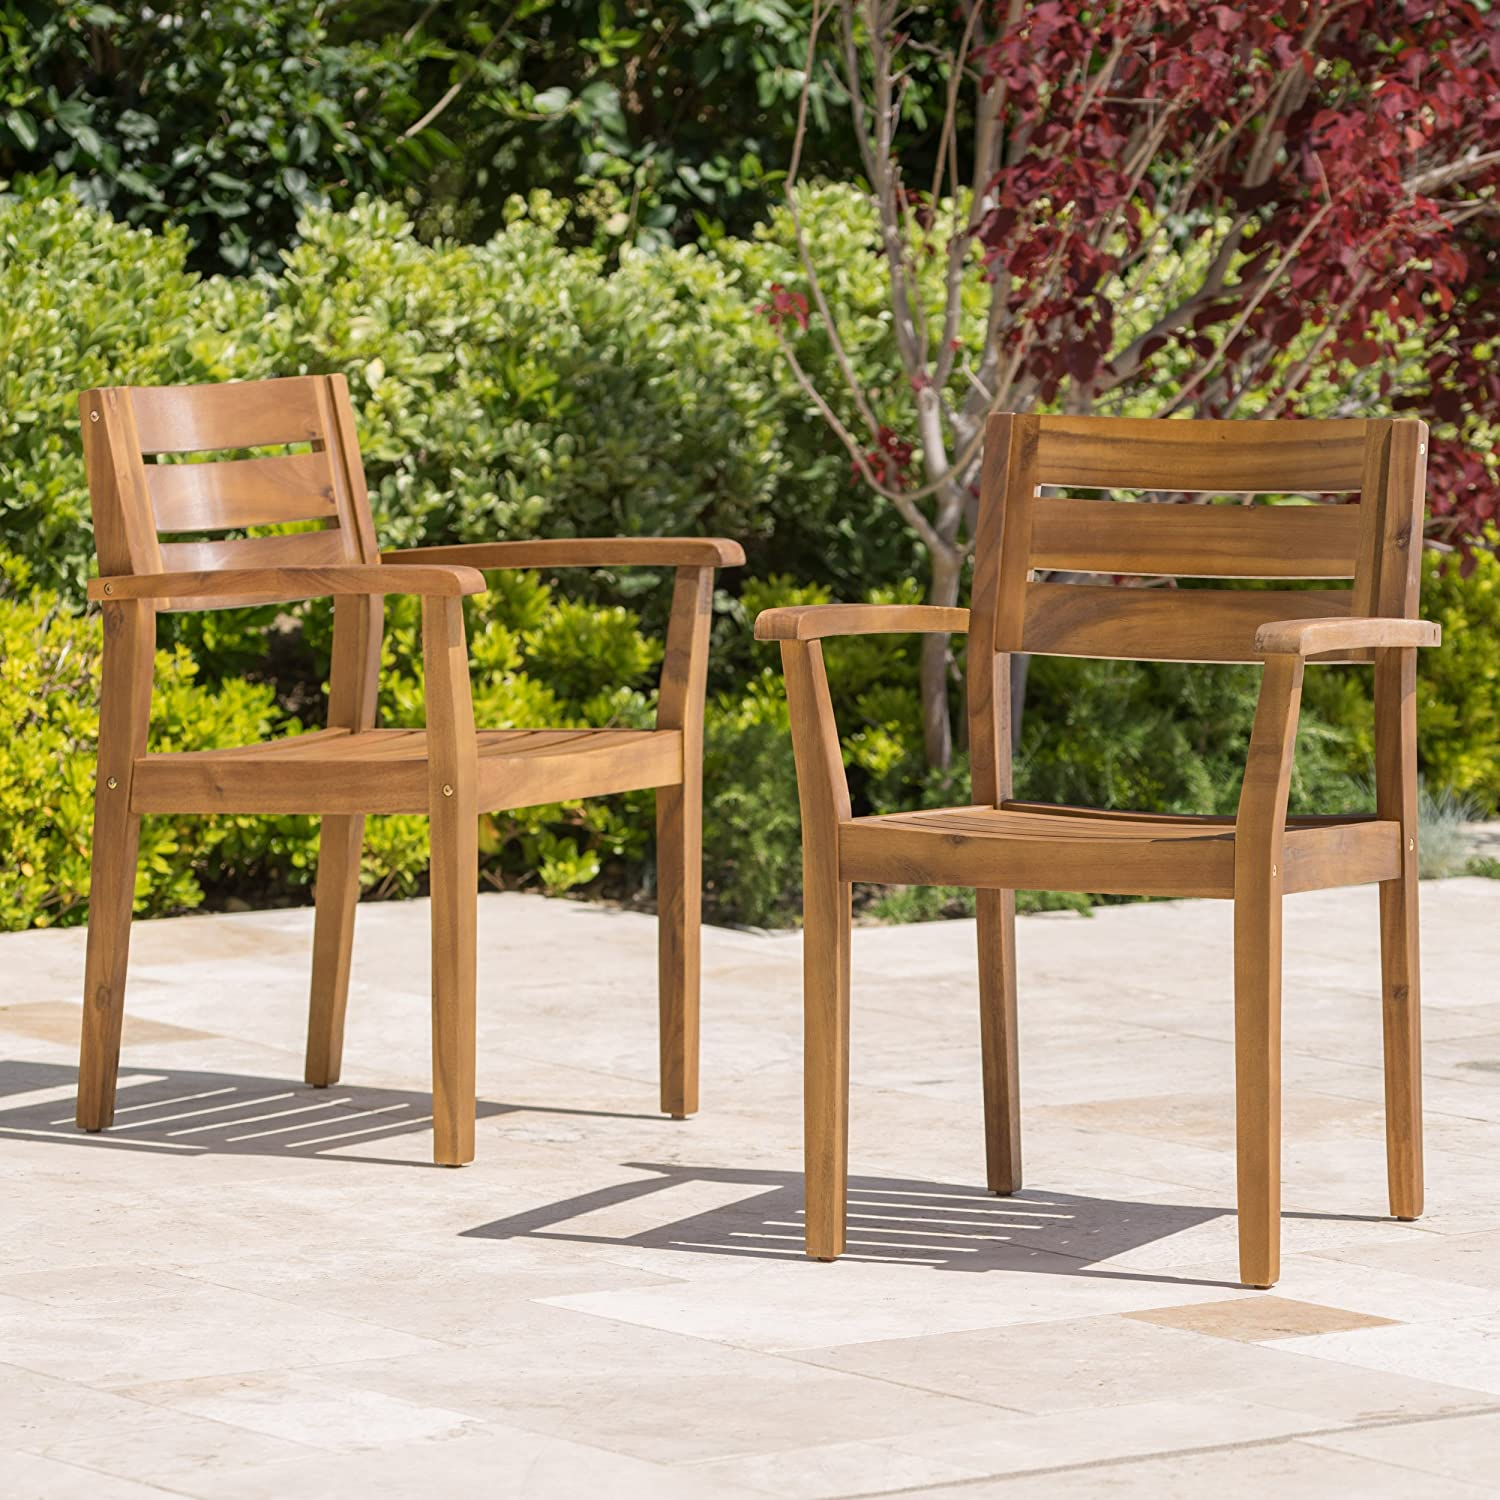 Amazon com stanyan patio furniture outdoor acacia wood patio dining chairs set of 2 garden outdoor